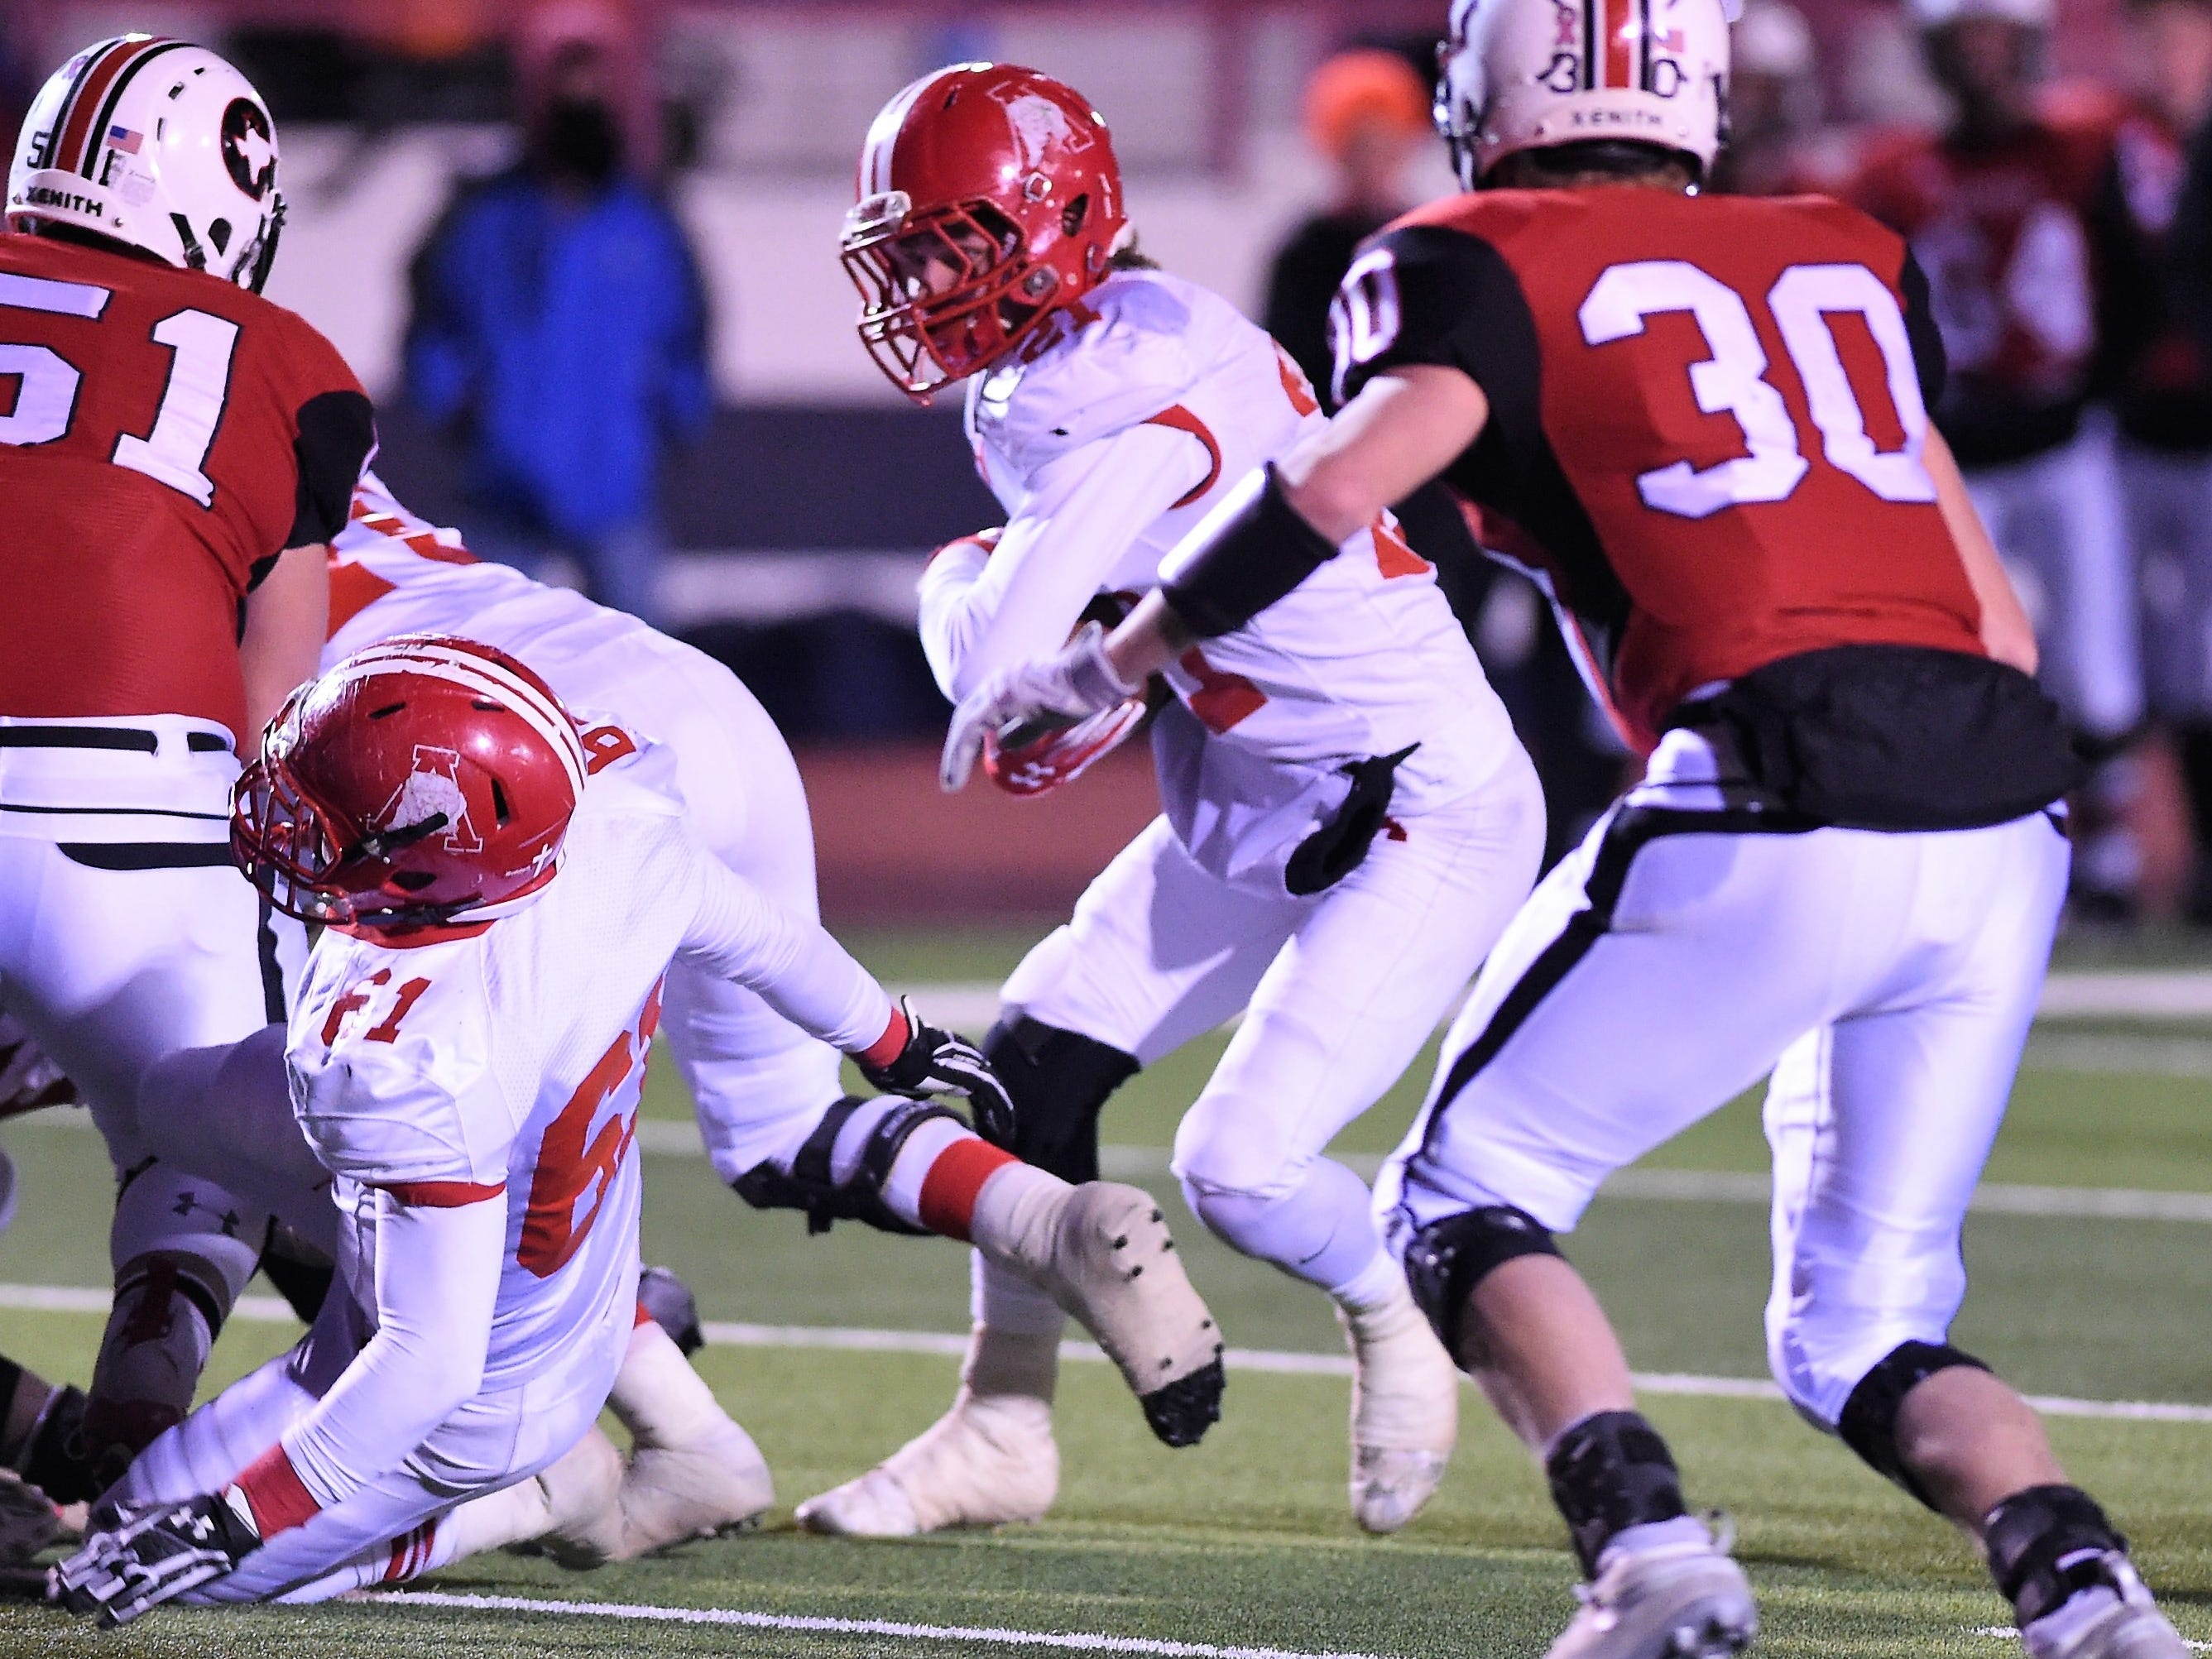 Albany's Cutter Edgar (21) tries to find a running lane against Gruver in the Class 2A Division II state semifinal at Sherwood Memorial Bulldog Stadium in Plainview on Thursday, Dec. 13, 2018.